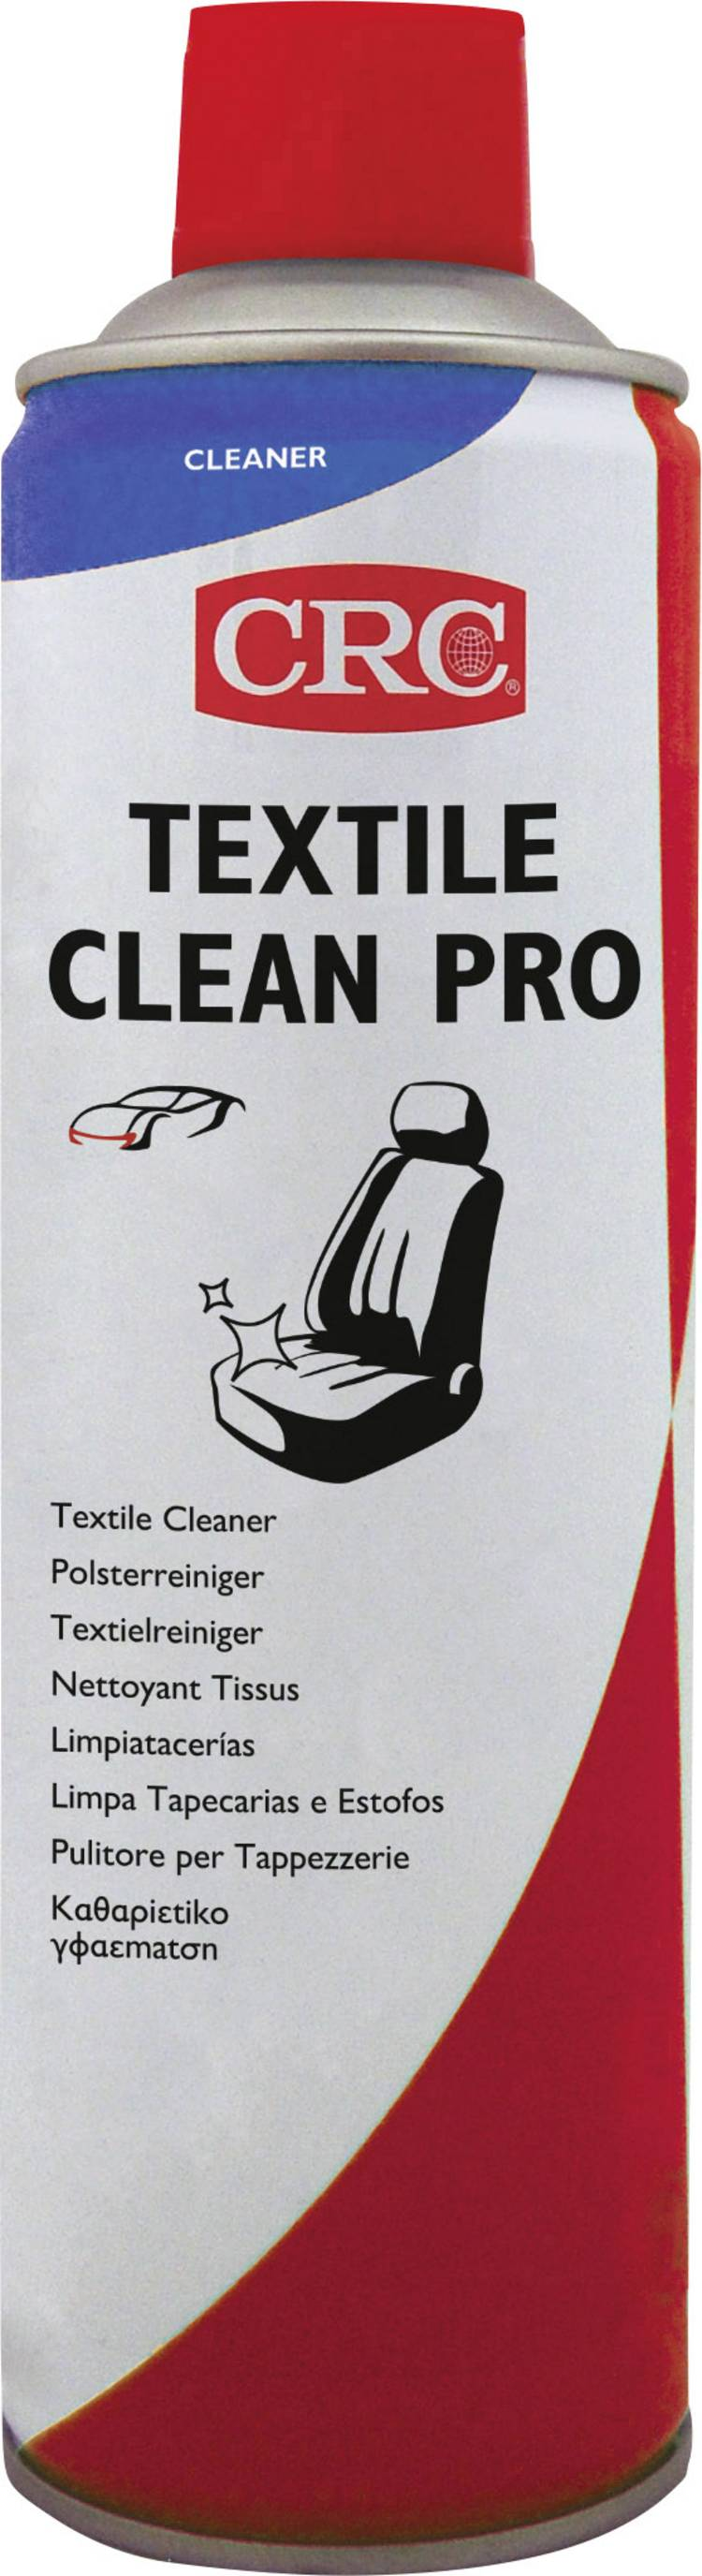 Image of CRC TEXTILE CLEAN PRO 32726-AA 500 ml